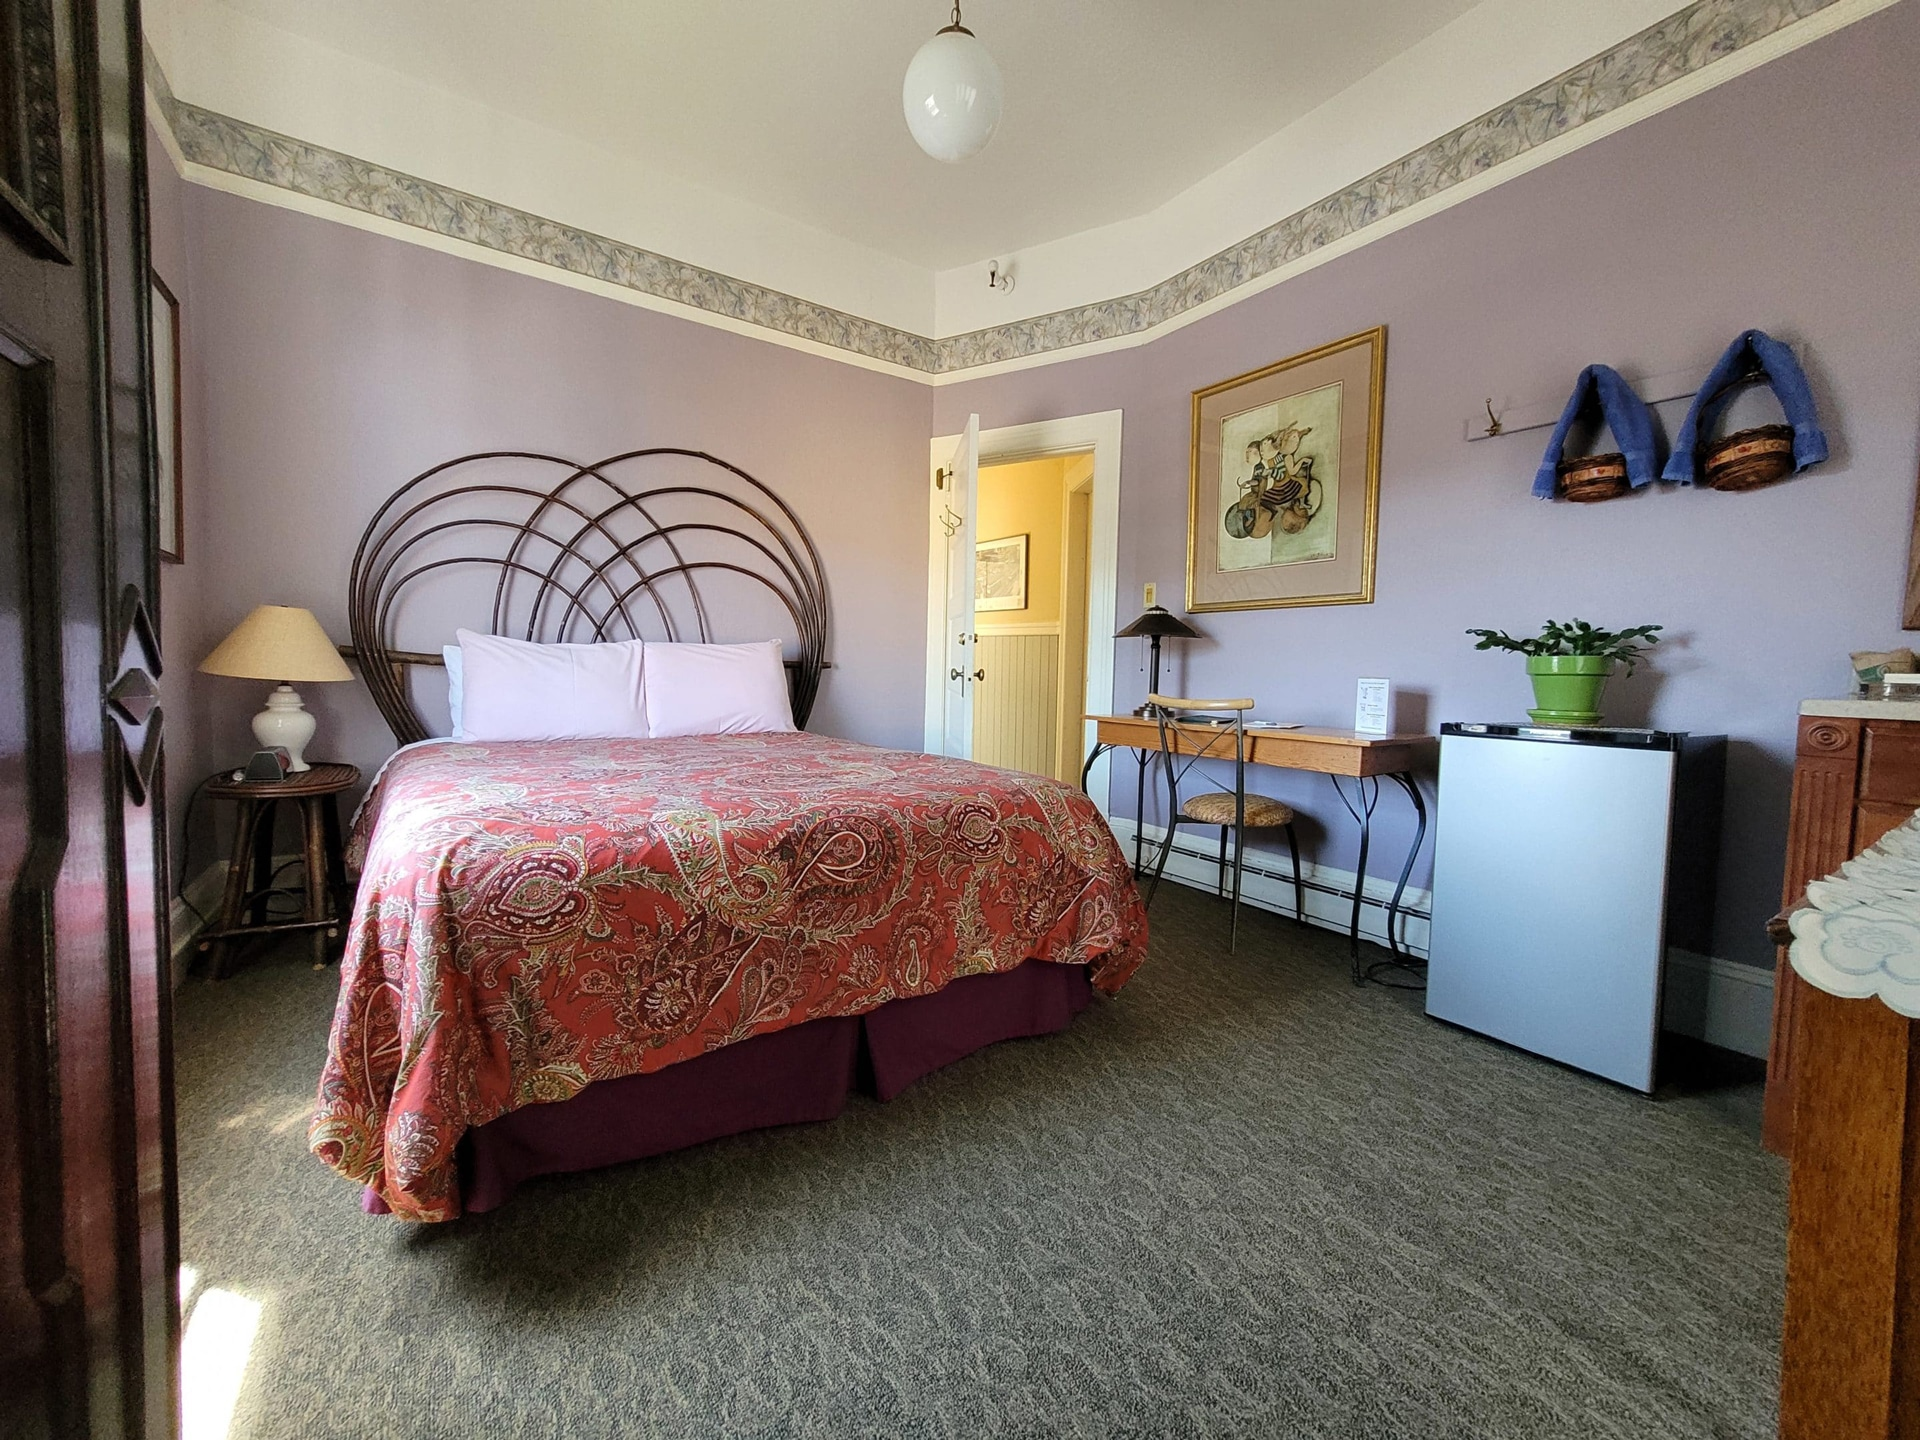 San Francisco Bed And Breakfast In The Castro District